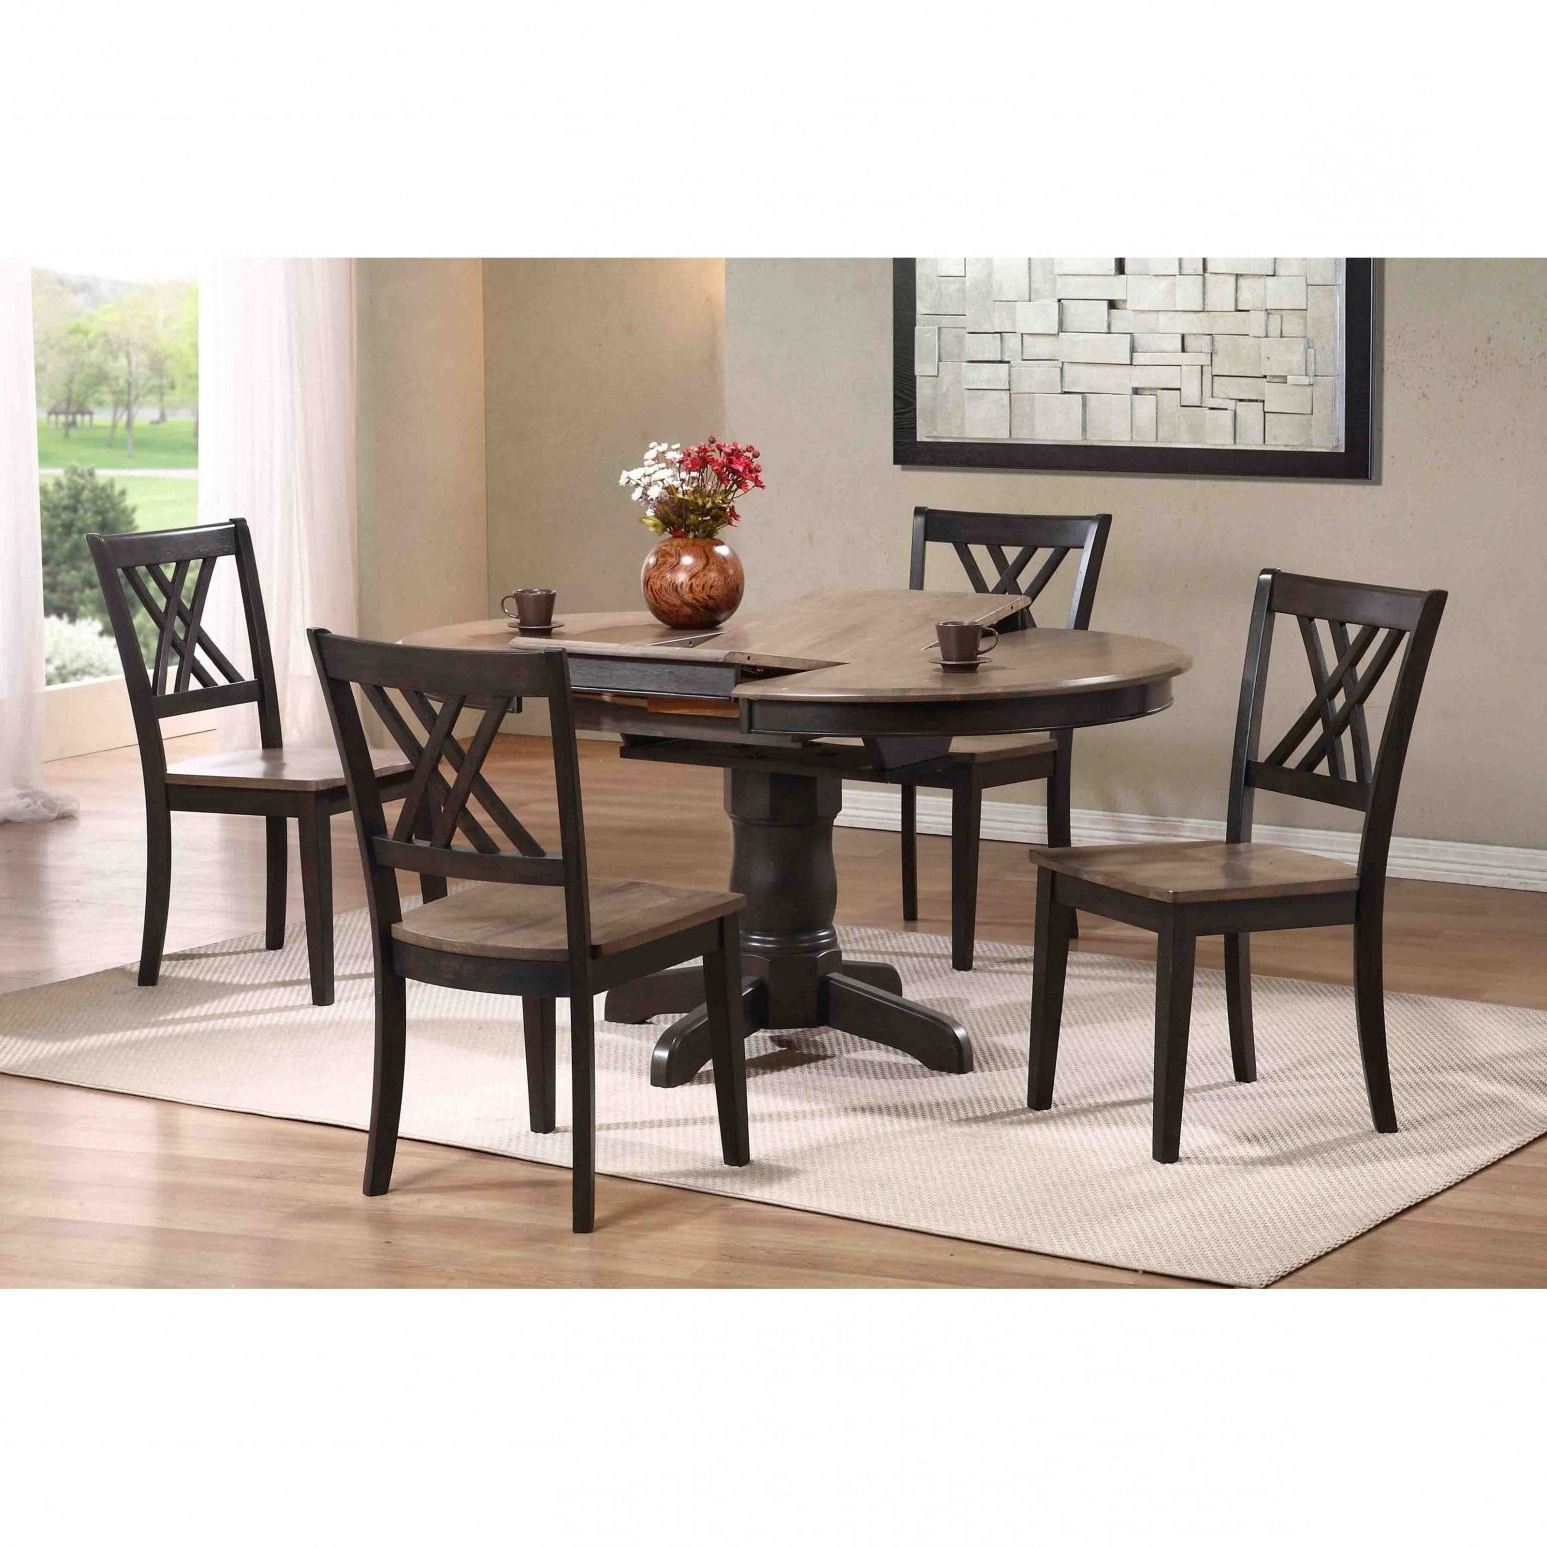 Most Up To Date 100+ Round 6 Person Dining Table – Best Office Furniture Check More Within 6 Person Round Dining Tables (View 20 of 25)